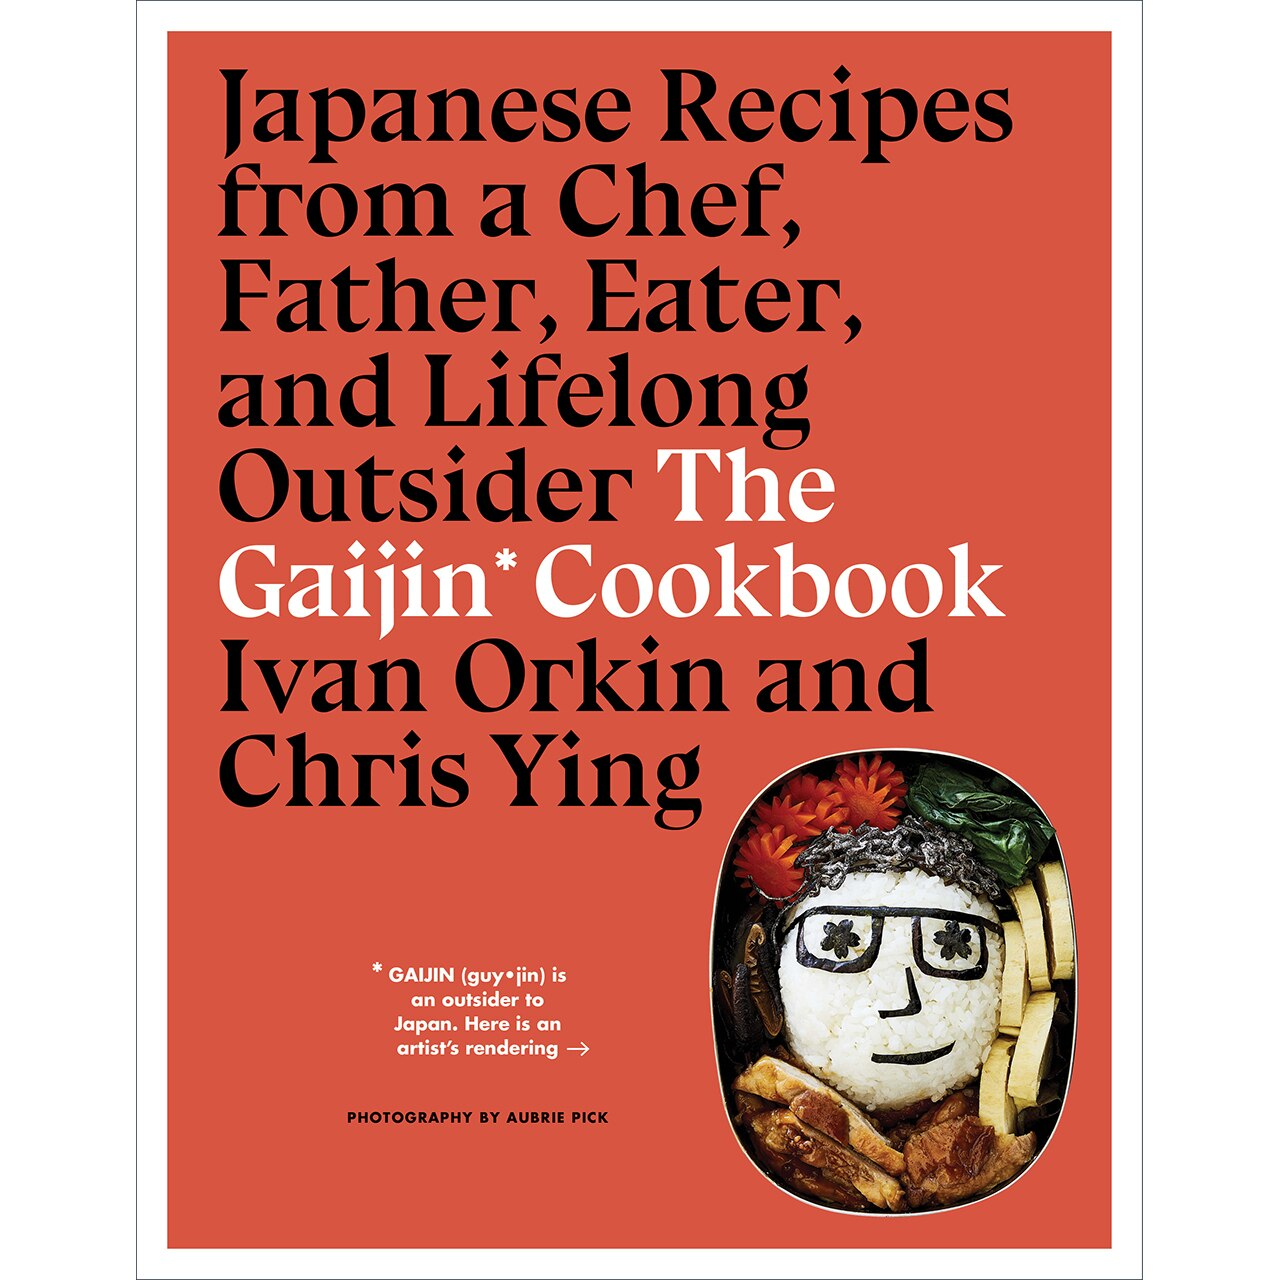 The Gaijin Cookbook: Japanese Recipes from a Chef, Father, Eater, and Lifelong Outsider by Ivan Orkin, Chris Ying